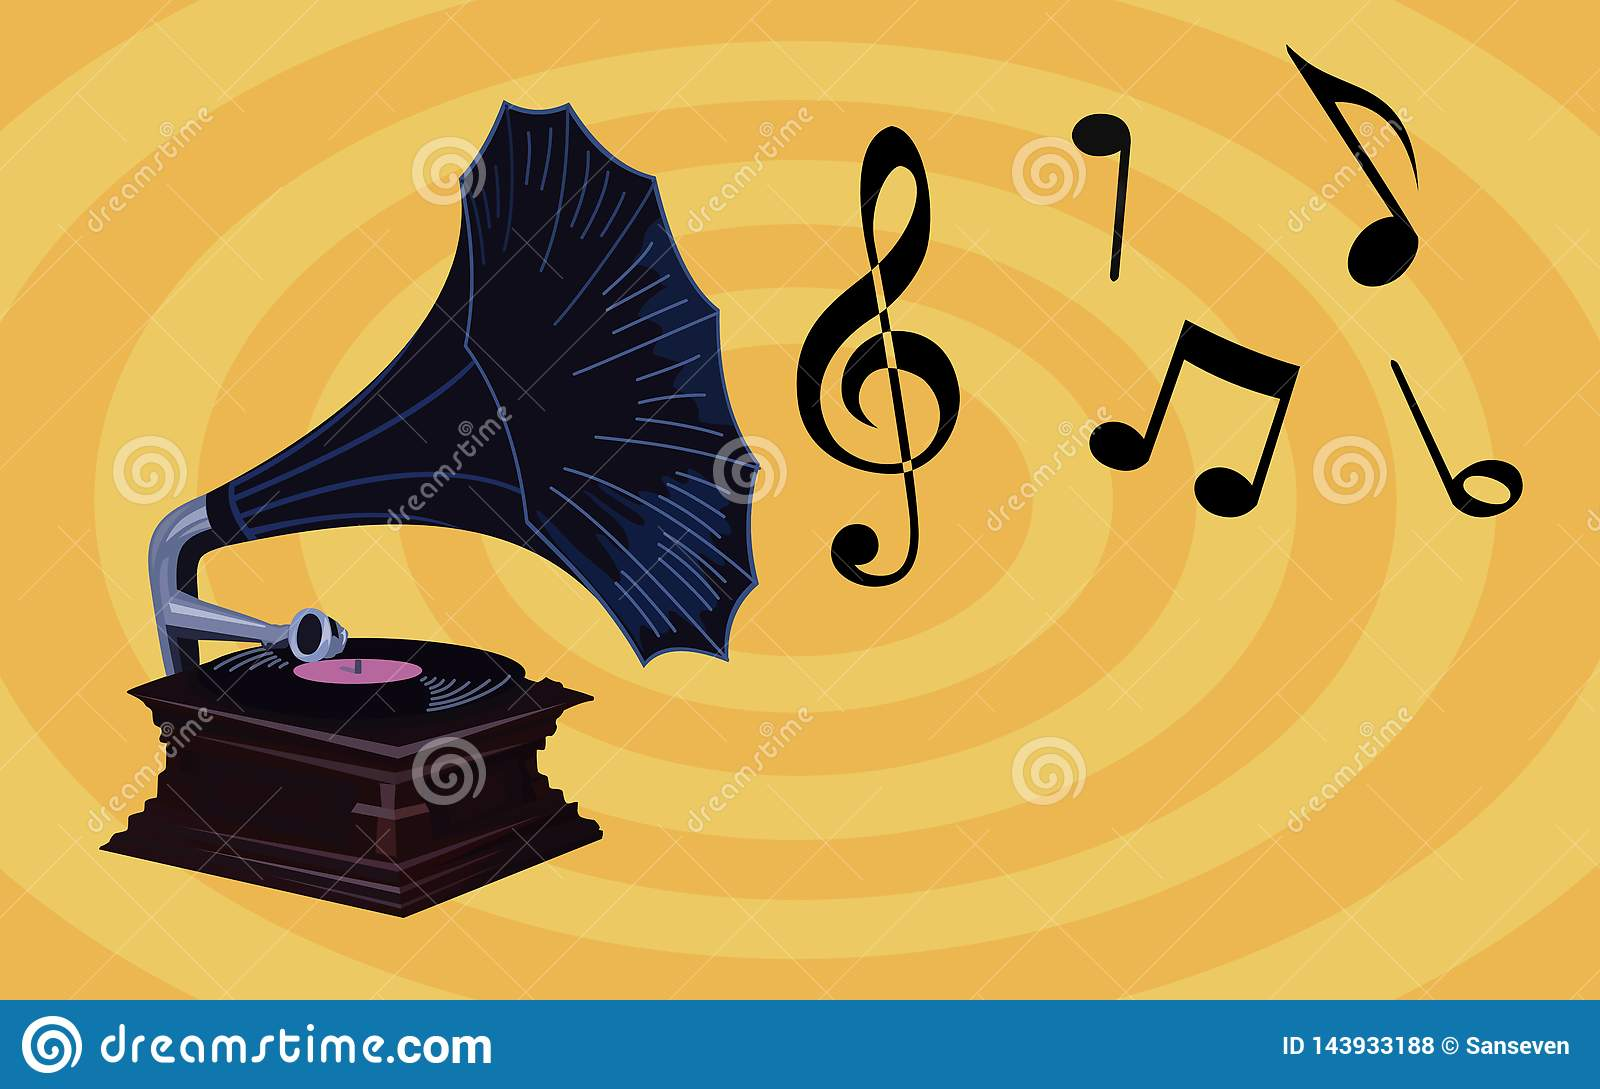 Retro Music Wallpaper Old Gramophone With Music Notes